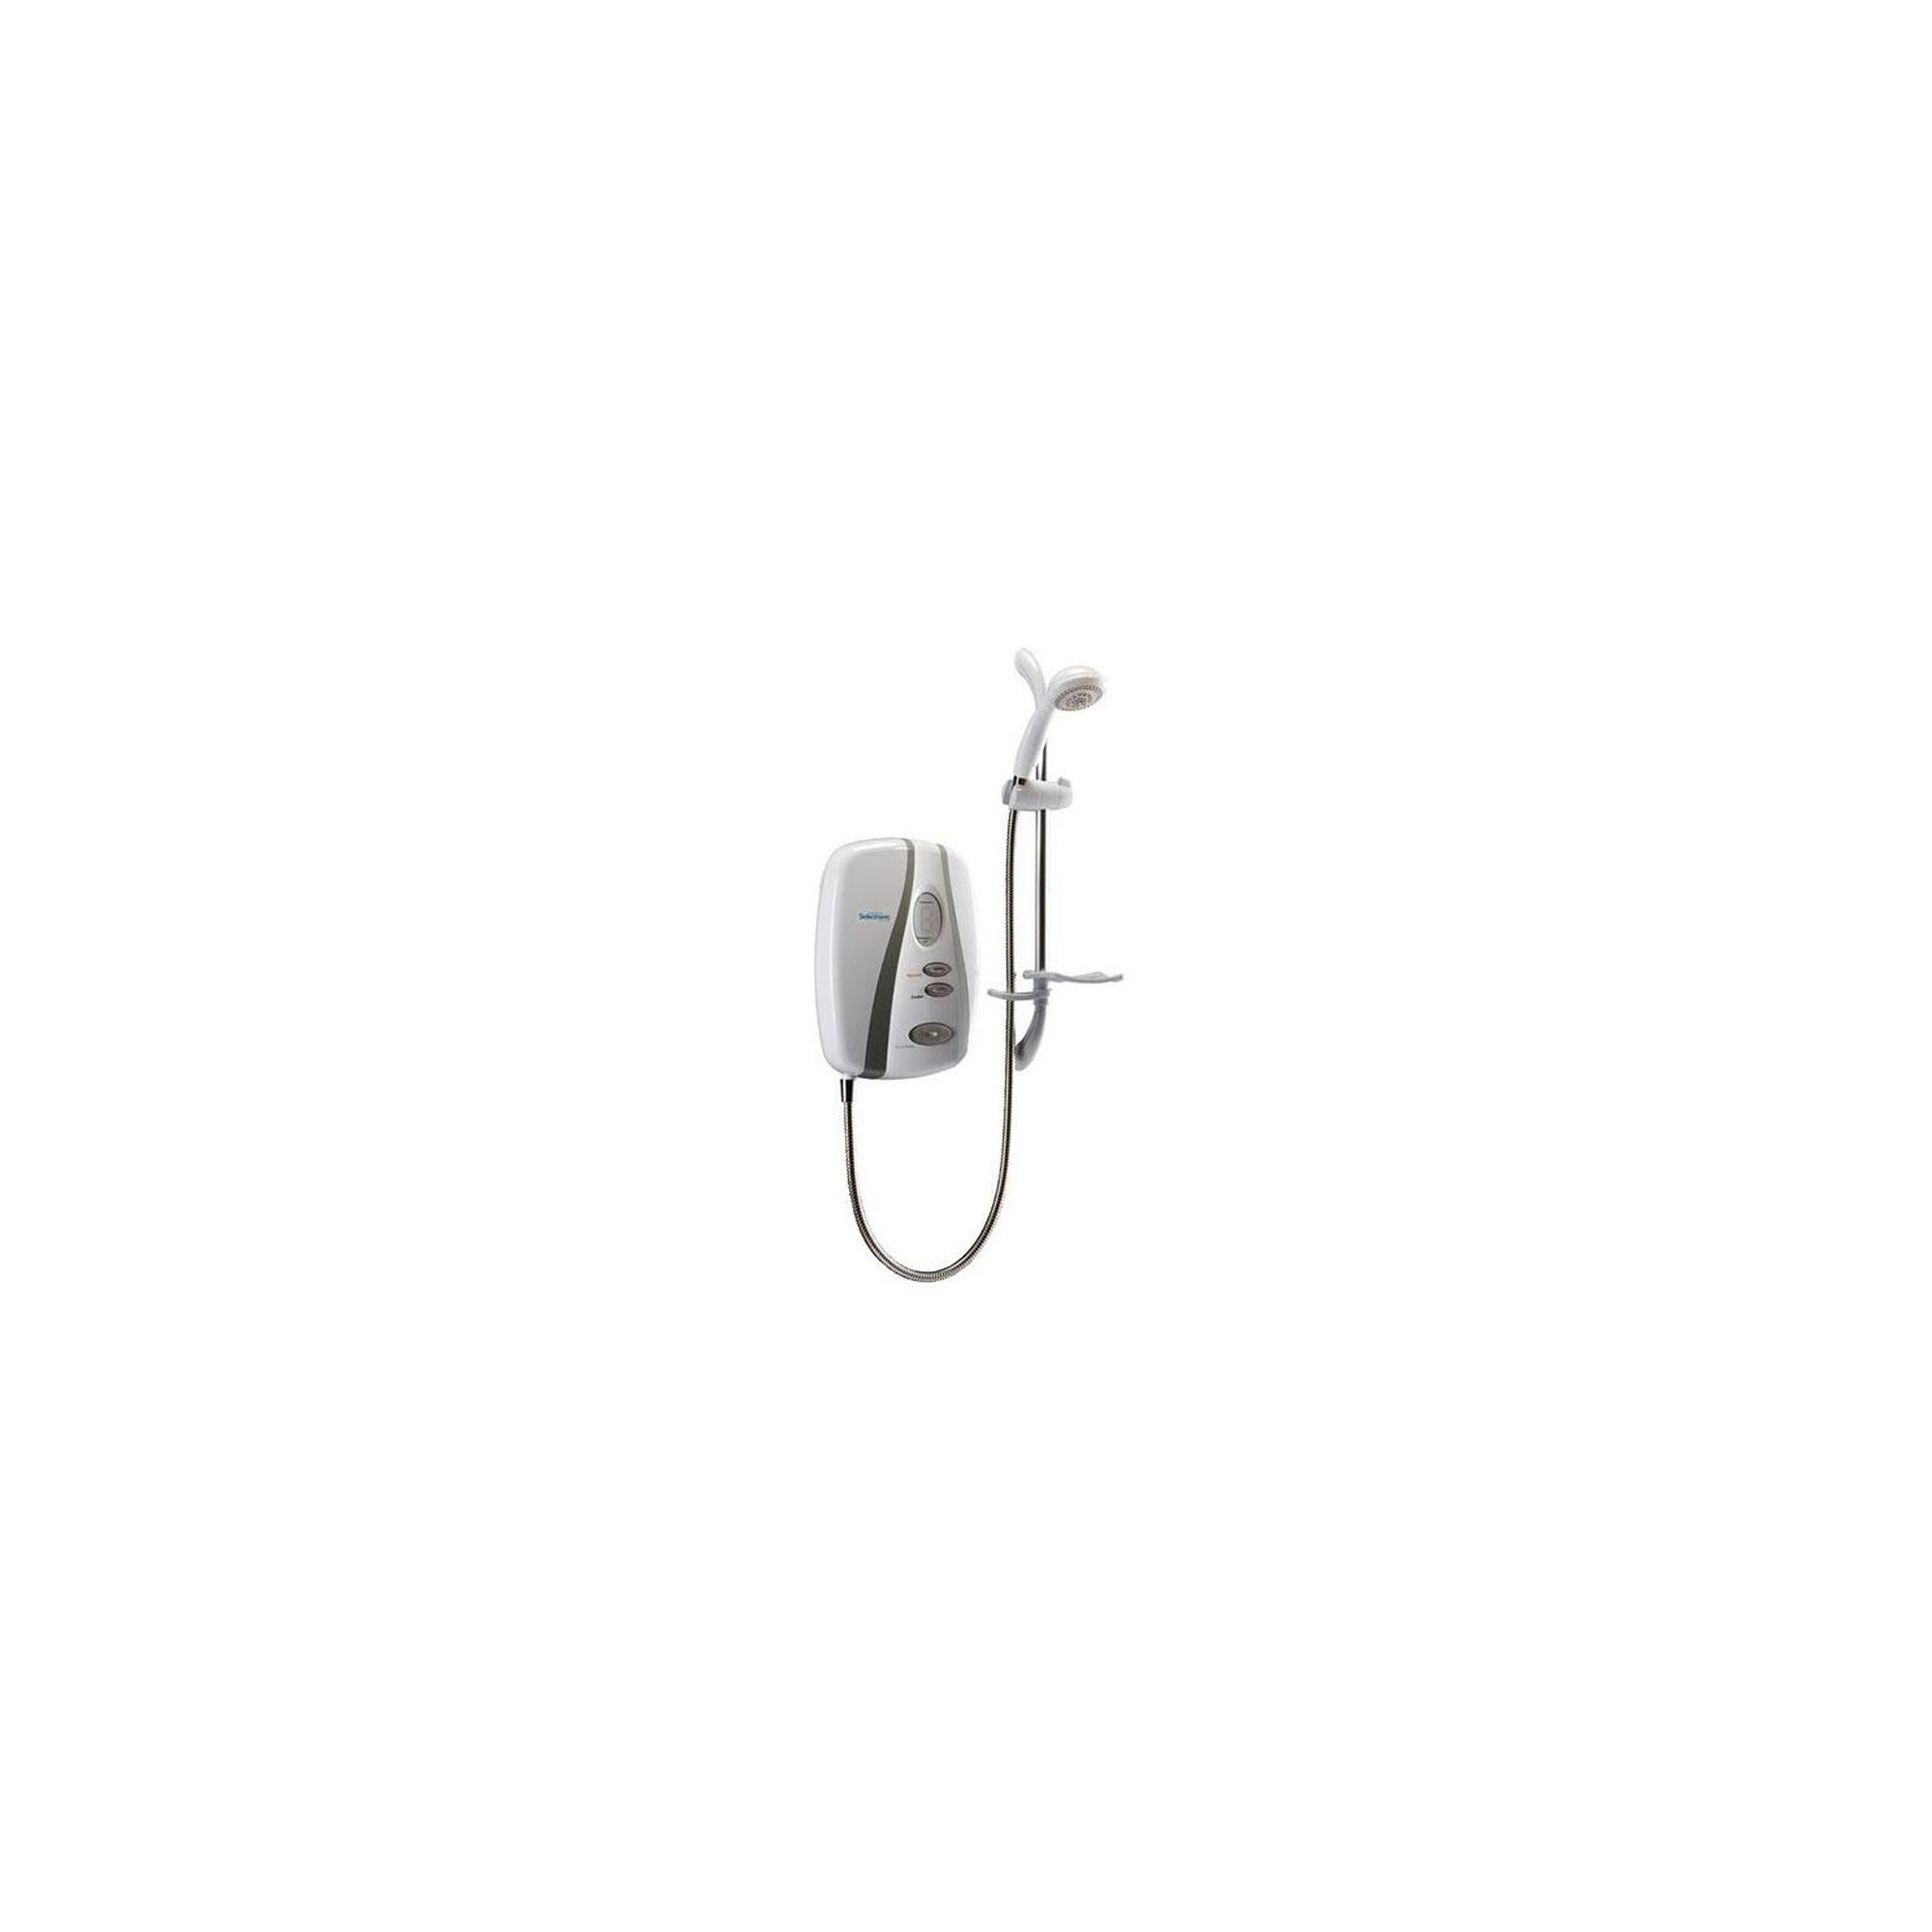 Redring Selectronic Premier Plus Electric Shower White/Chrome 9.5kW at Tesco Direct